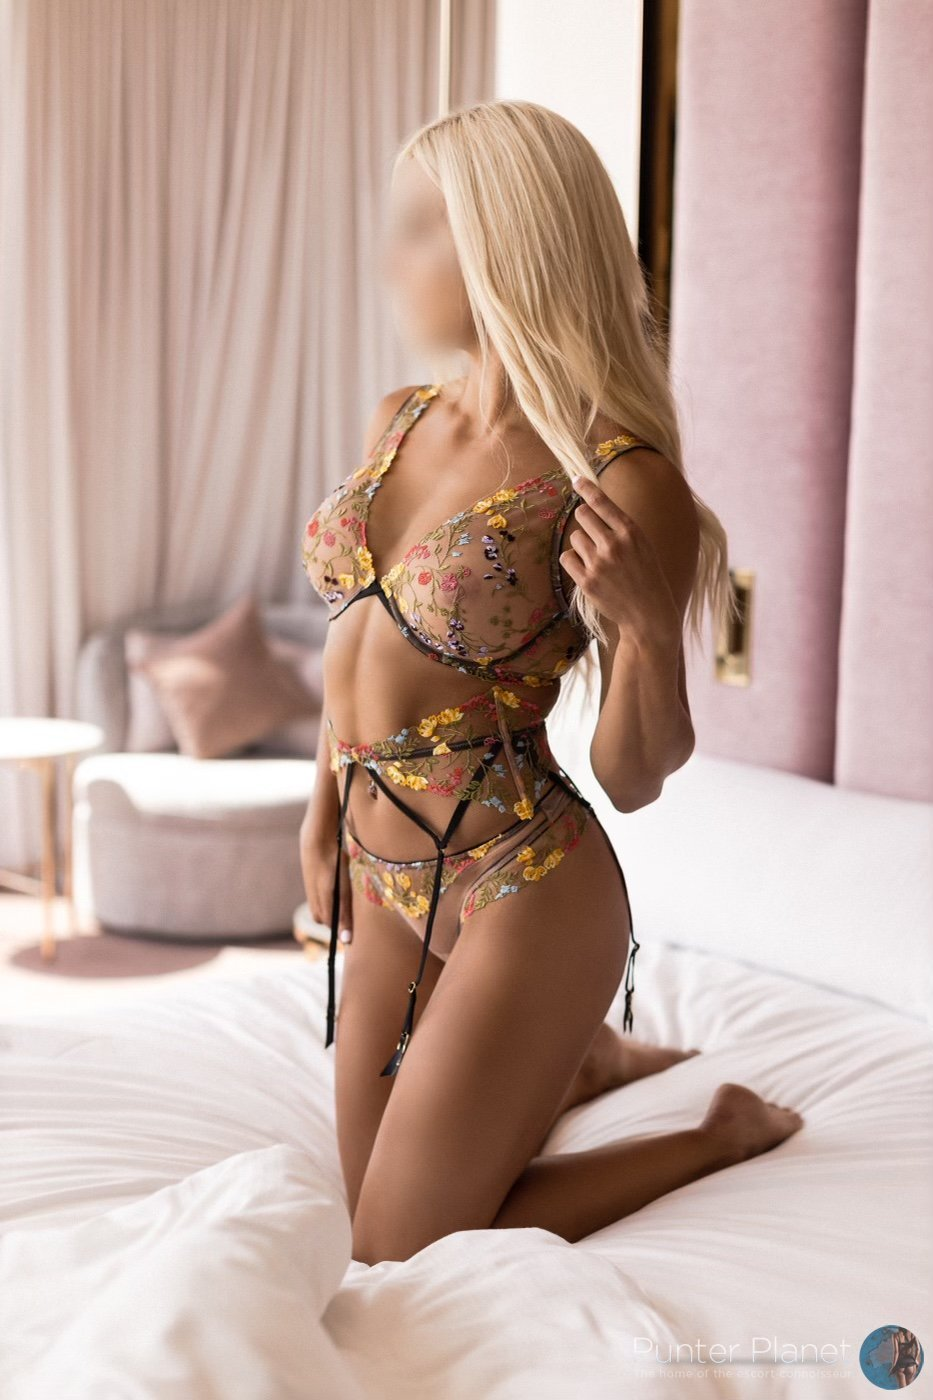 The Beautiful Ava is available in Melbourne and will be touring Adelaide this month.